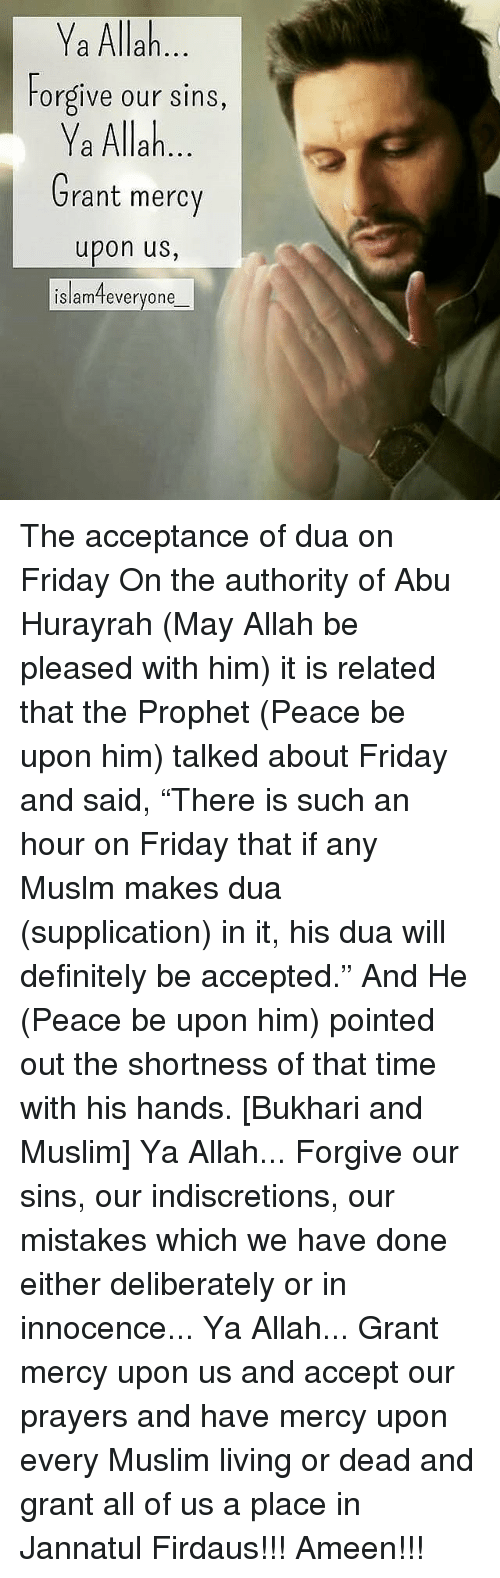 "shortness: Ya Allah  Forgive our sins,  Ya Allah  Grant mercy  upon us,  islamteveryone The acceptance of dua on Friday On the authority of Abu Hurayrah (May Allah be pleased with him) it is related that the Prophet (Peace be upon him) talked about Friday and said, ""There is such an hour on Friday that if any Muslm makes dua (supplication) in it, his dua will definitely be accepted."" And He (Peace be upon him) pointed out the shortness of that time with his hands. [Bukhari and Muslim] Ya Allah... Forgive our sins, our indiscretions, our mistakes which we have done either deliberately or in innocence... Ya Allah... Grant mercy upon us and accept our prayers and have mercy upon every Muslim living or dead and grant all of us a place in Jannatul Firdaus!!! Ameen!!!"